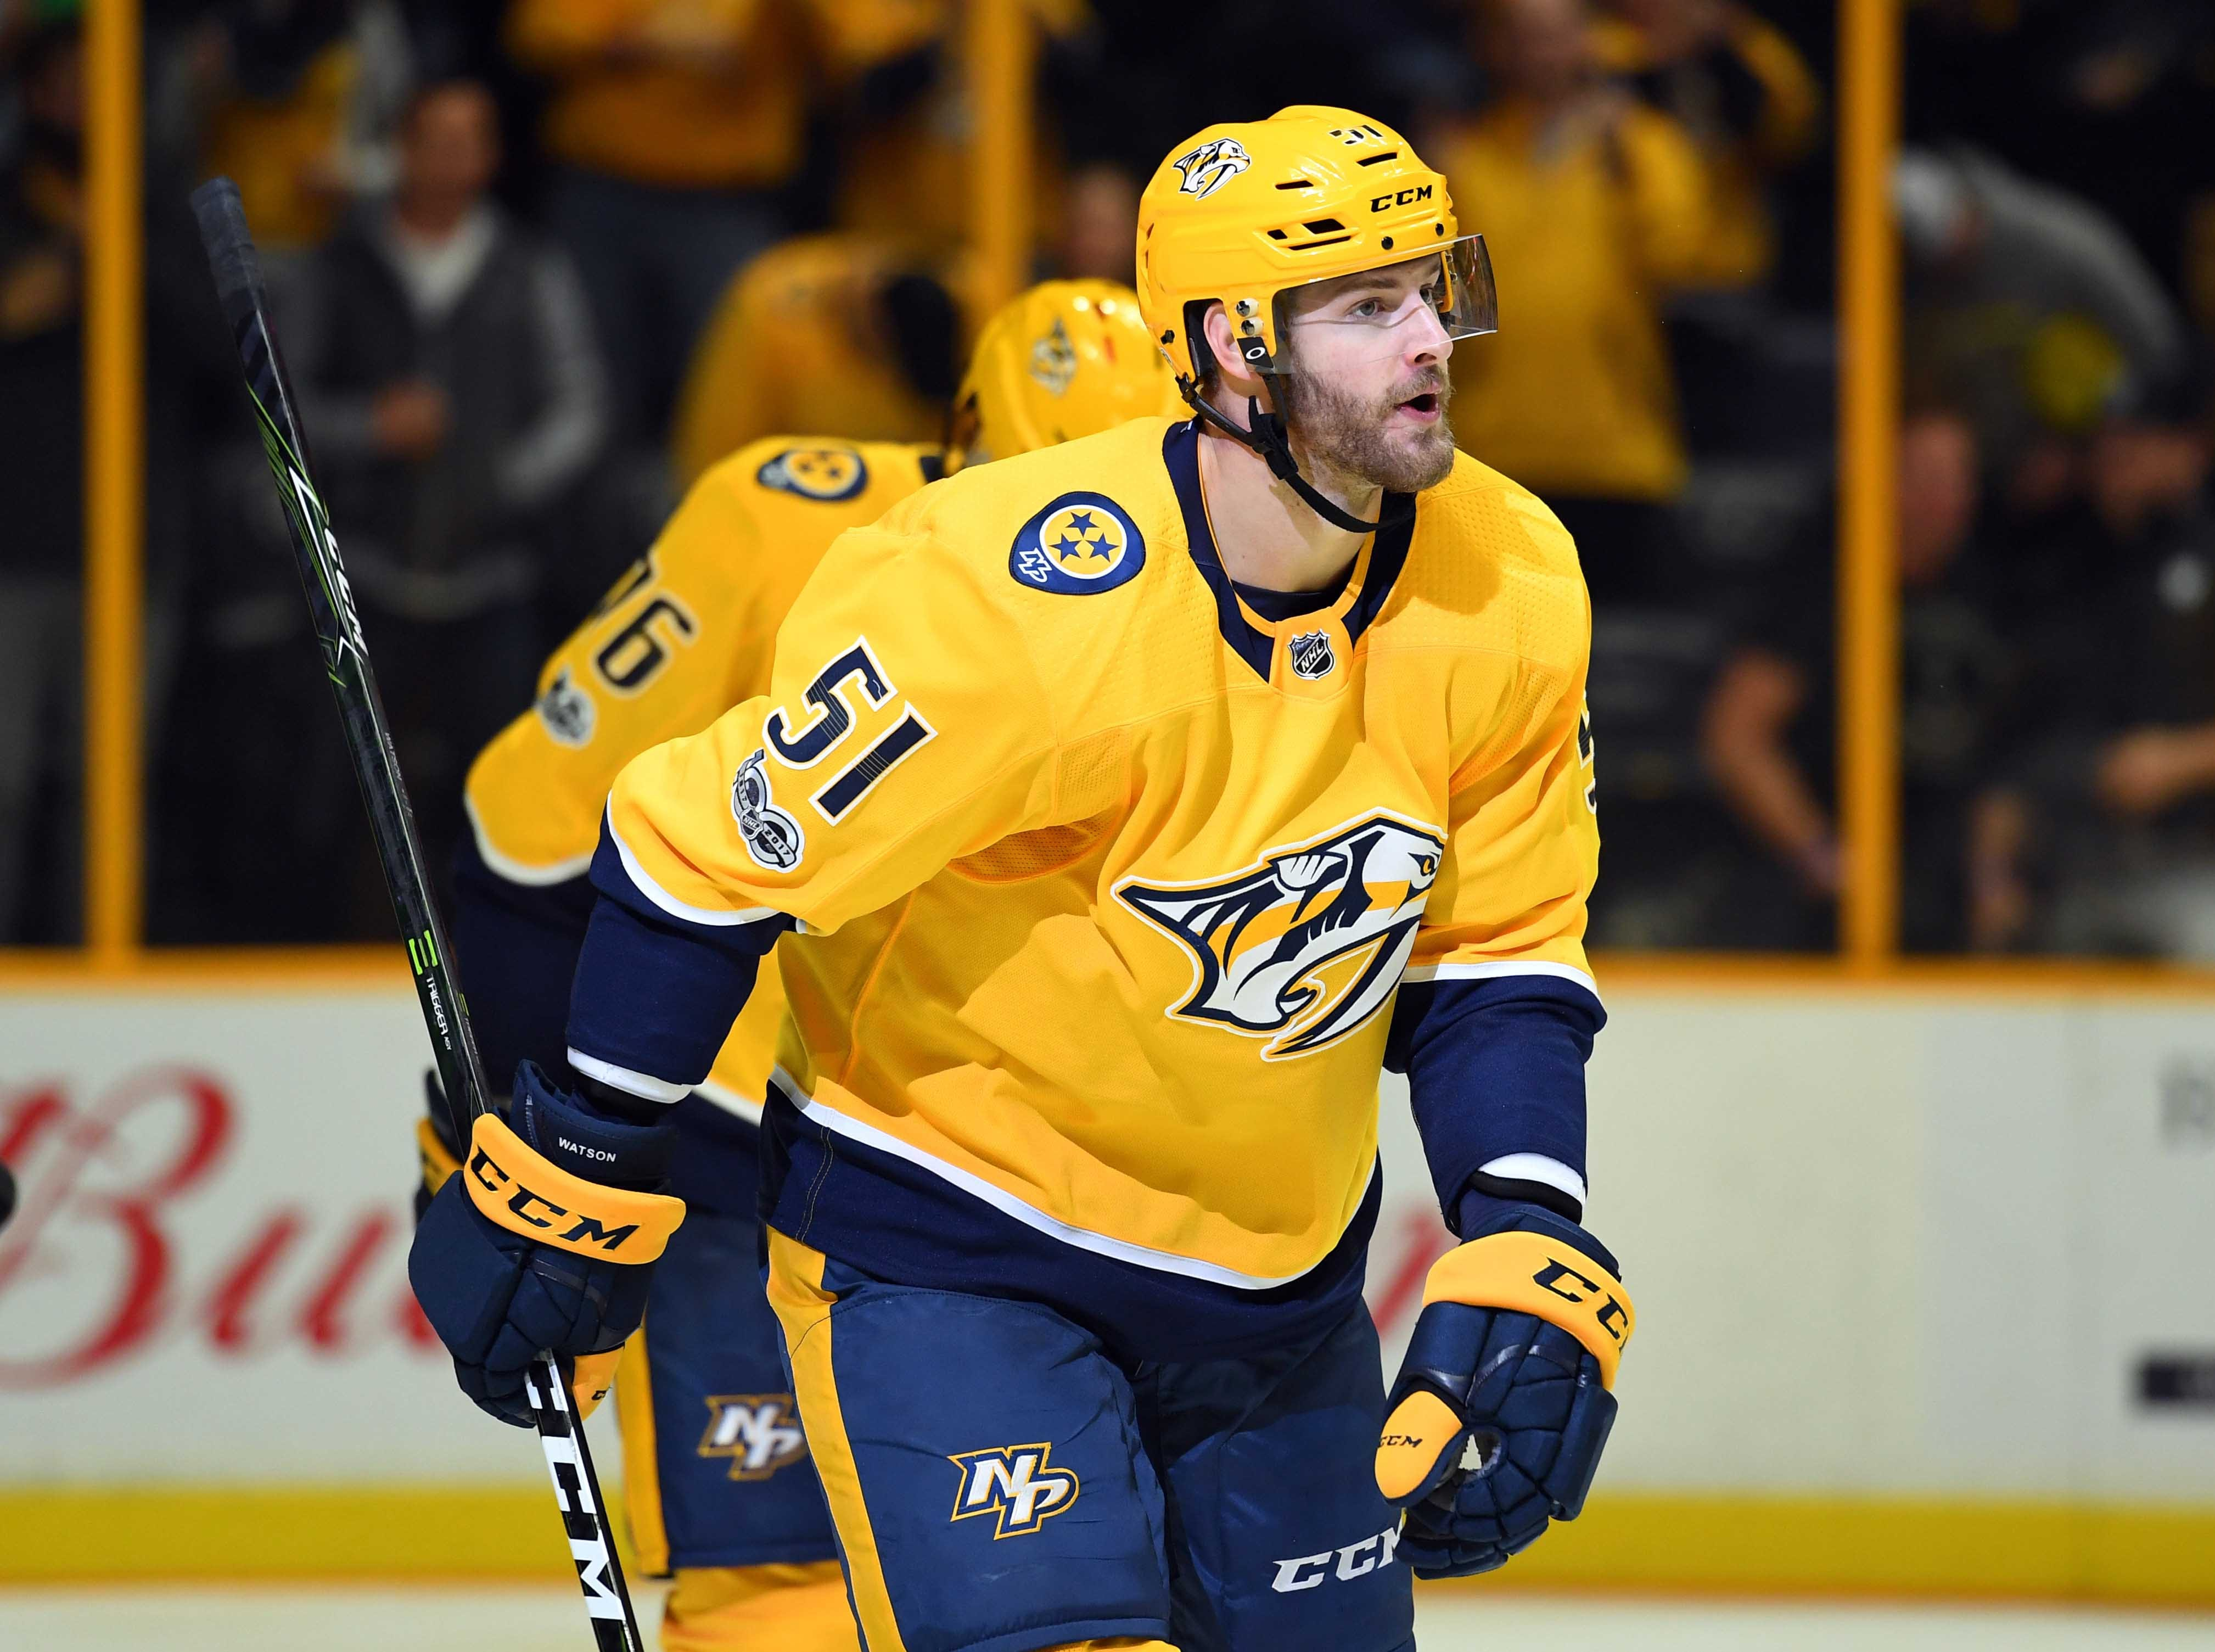 Sep. 7: Nashville Predators left wing Austin Watson was suspended 27 games for a domestic-violence incident. Lost pay: $354,838.71.